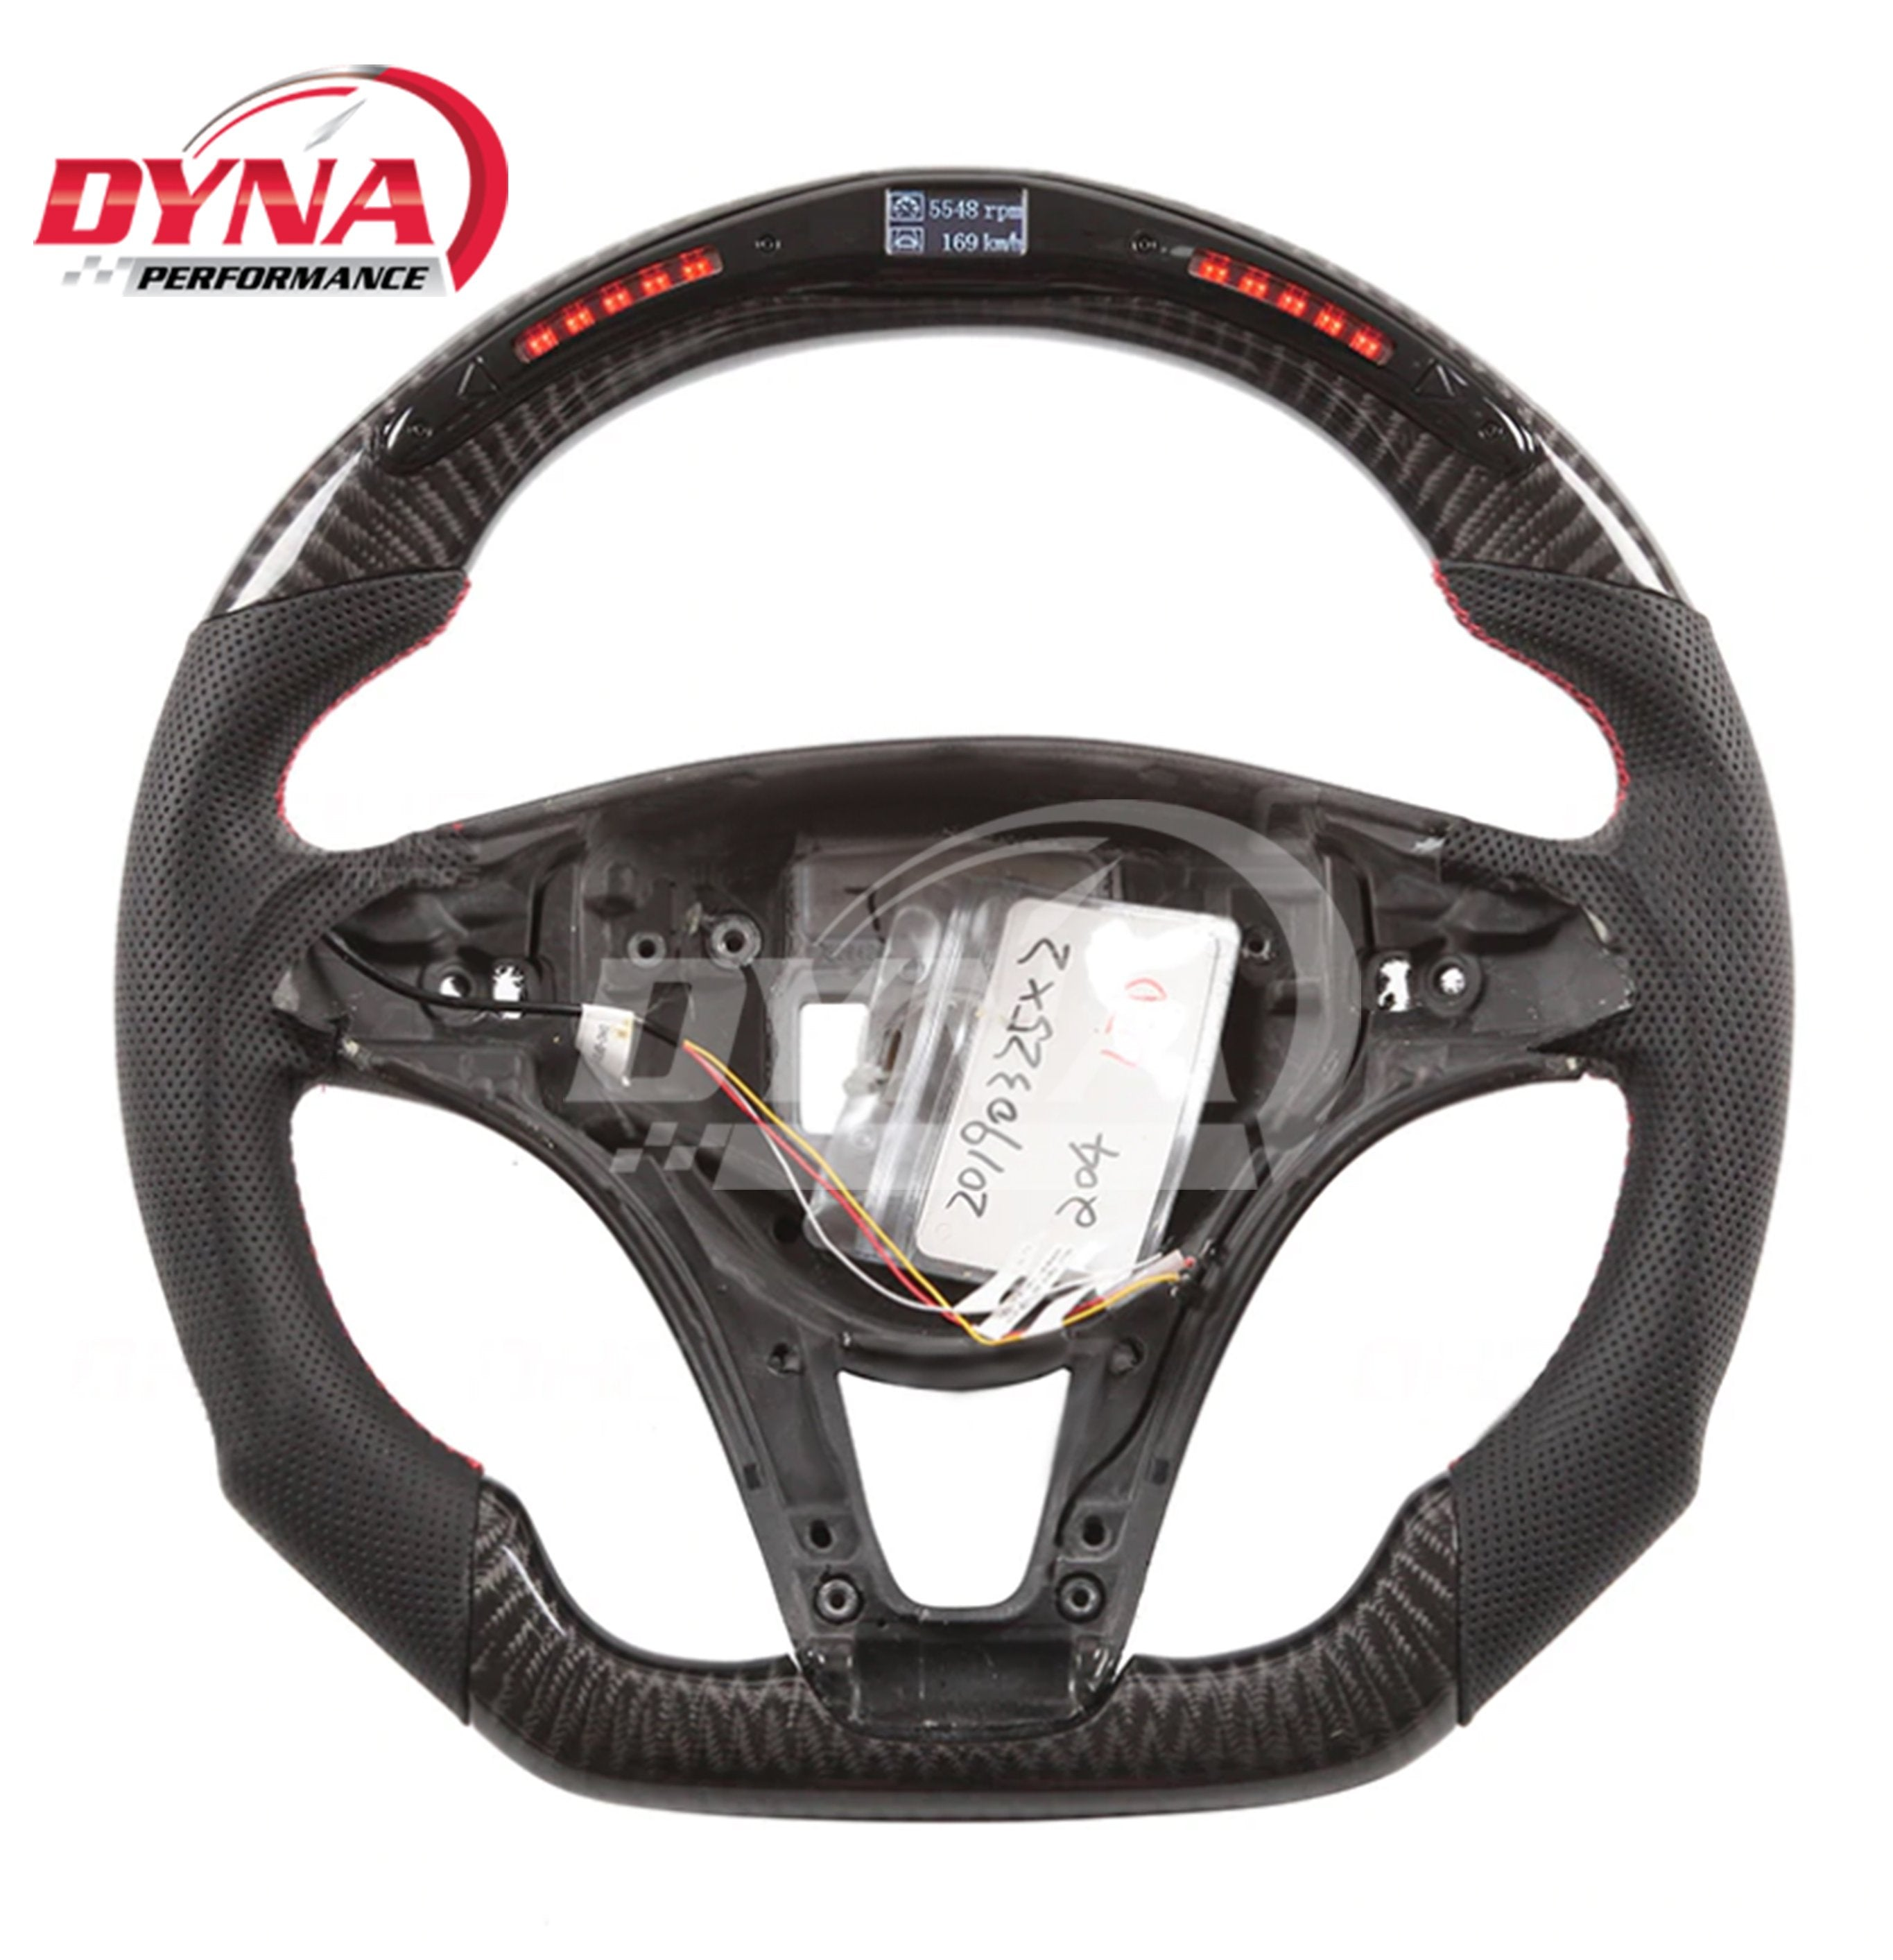 Mercedes-Benz C Class 2012 - 2014 Steering Wheel